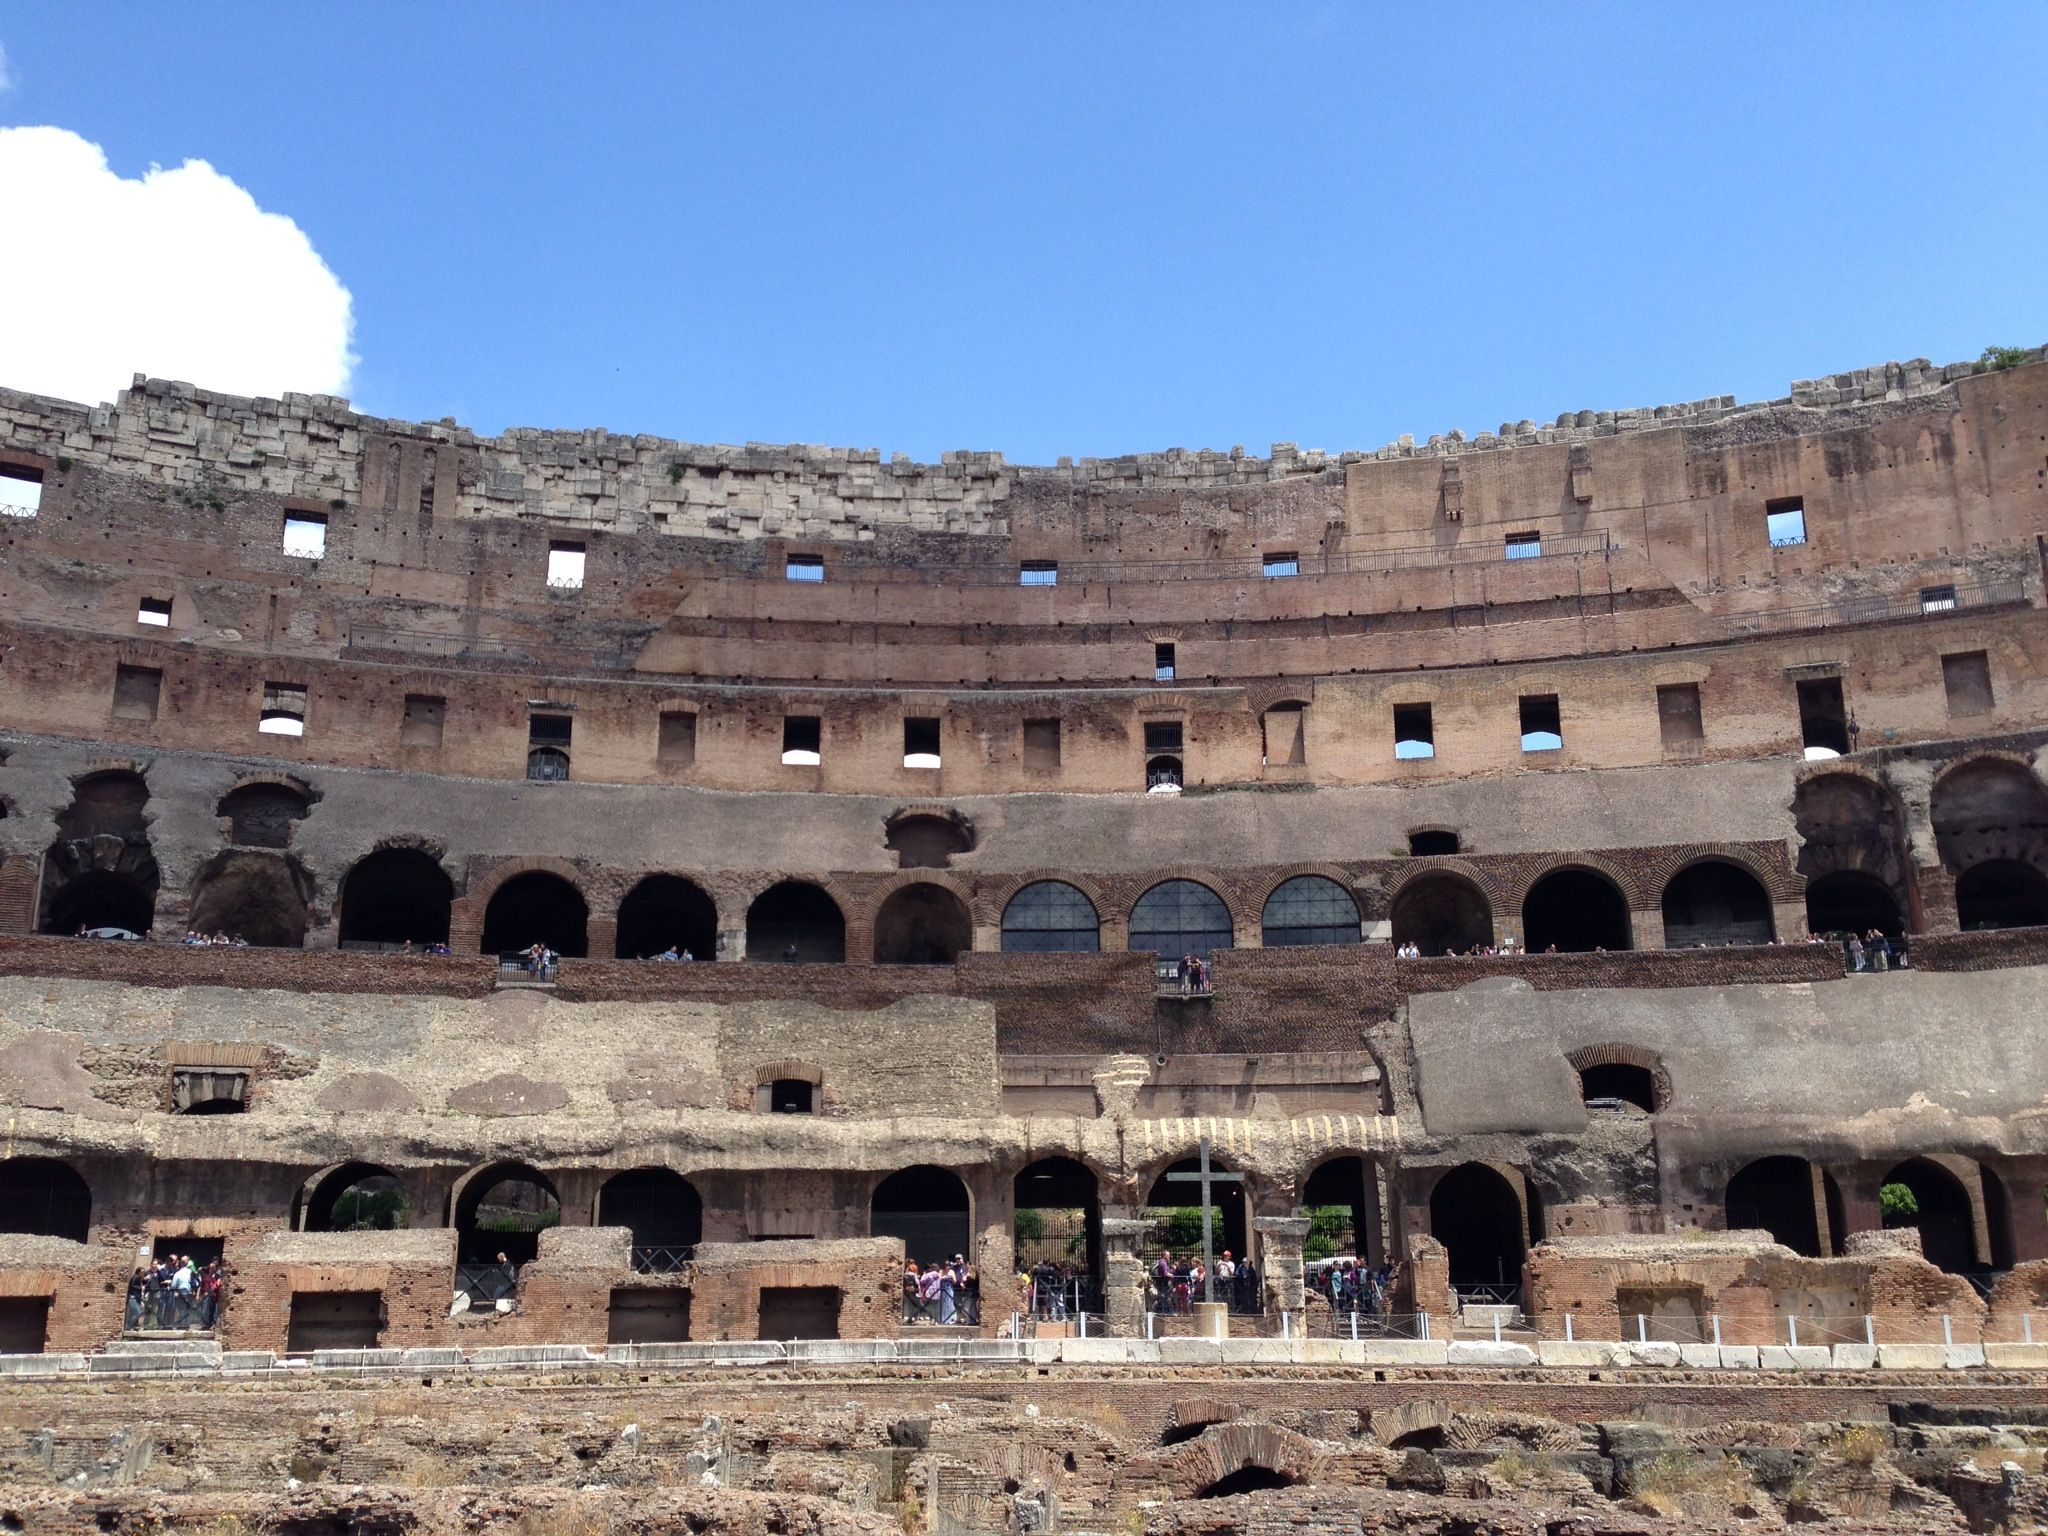 Rome and the magnificent #colosseum